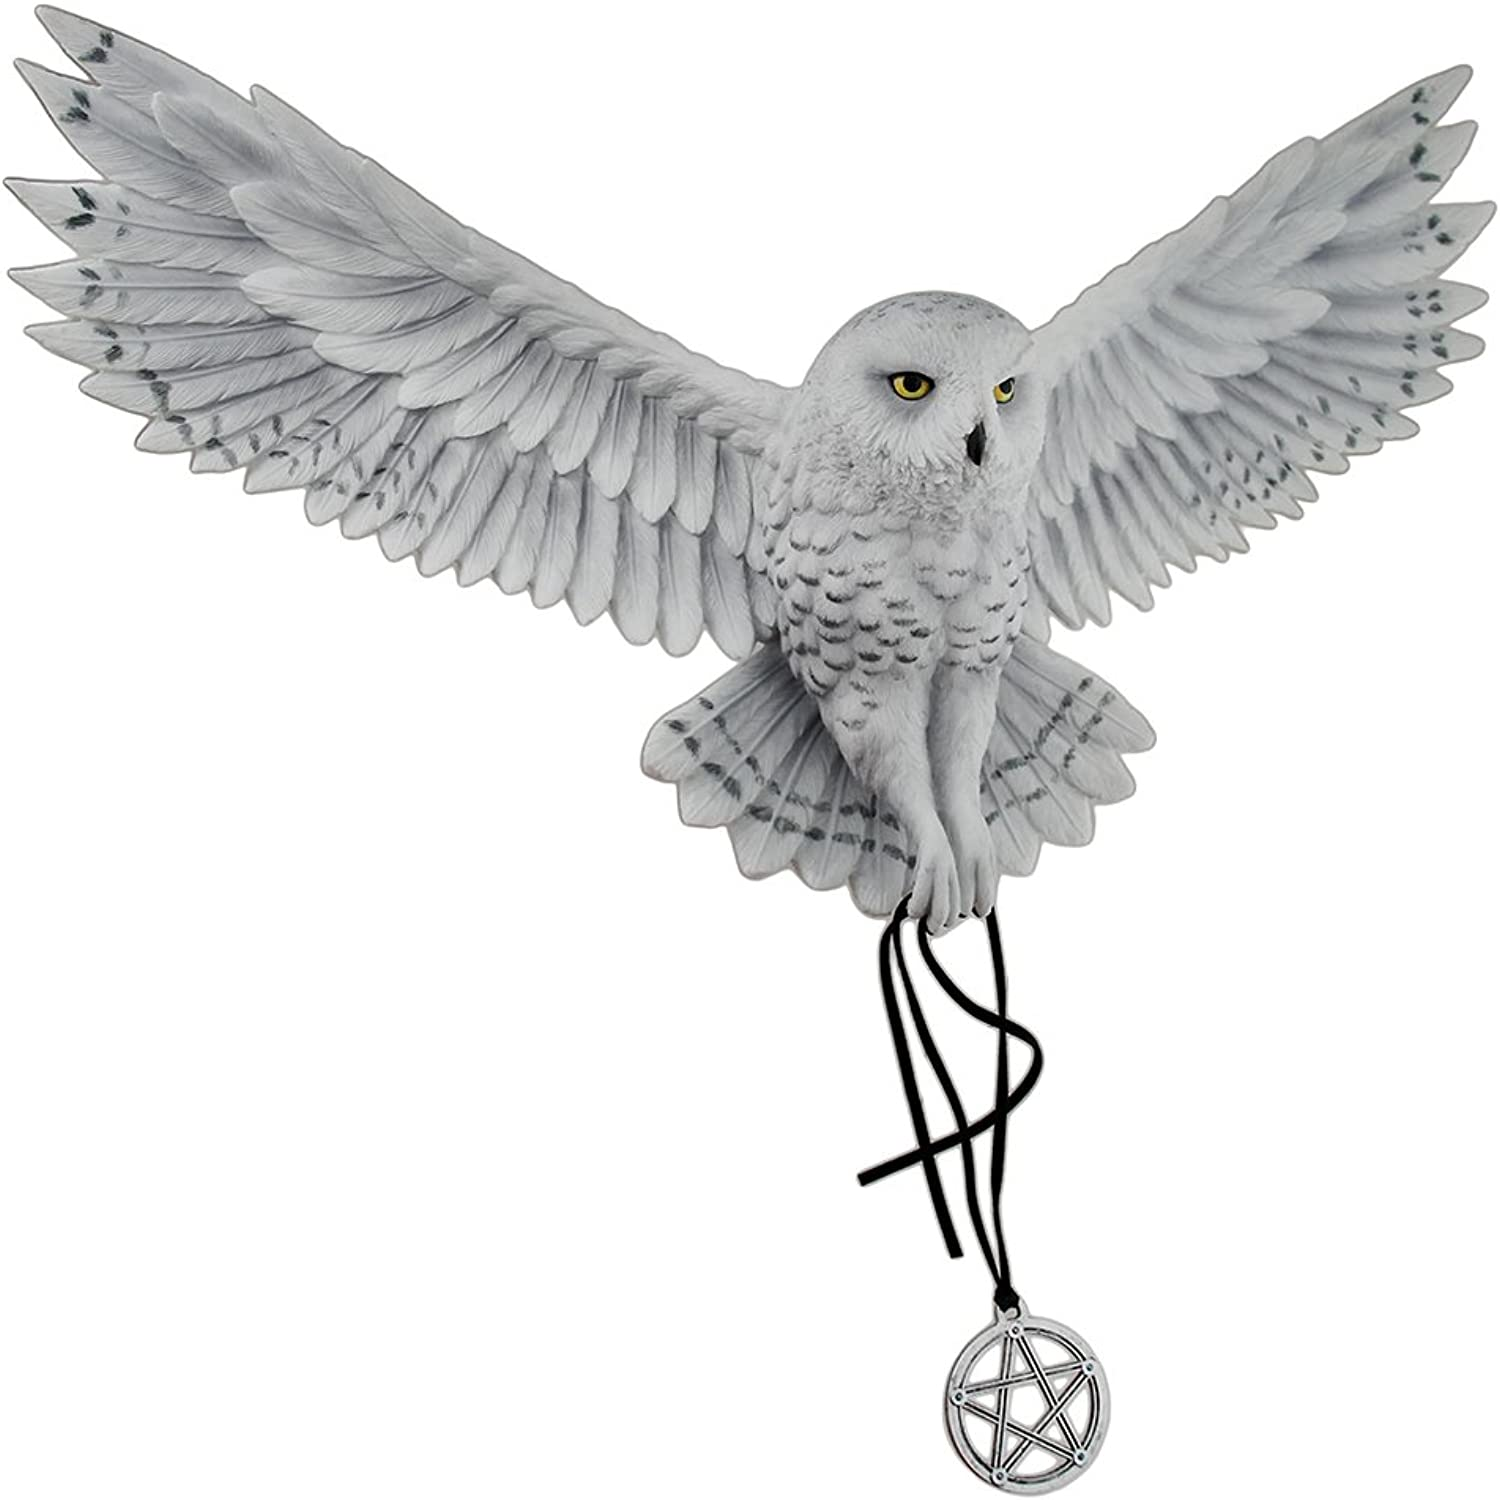 Veronese Resin Wall Sculptures Anne Stokes Awaken Your Magic Snowy Owl With Pentagram Pendant Wall Sculpture 17.5 X 11.5 X 4 Inches Light bluee